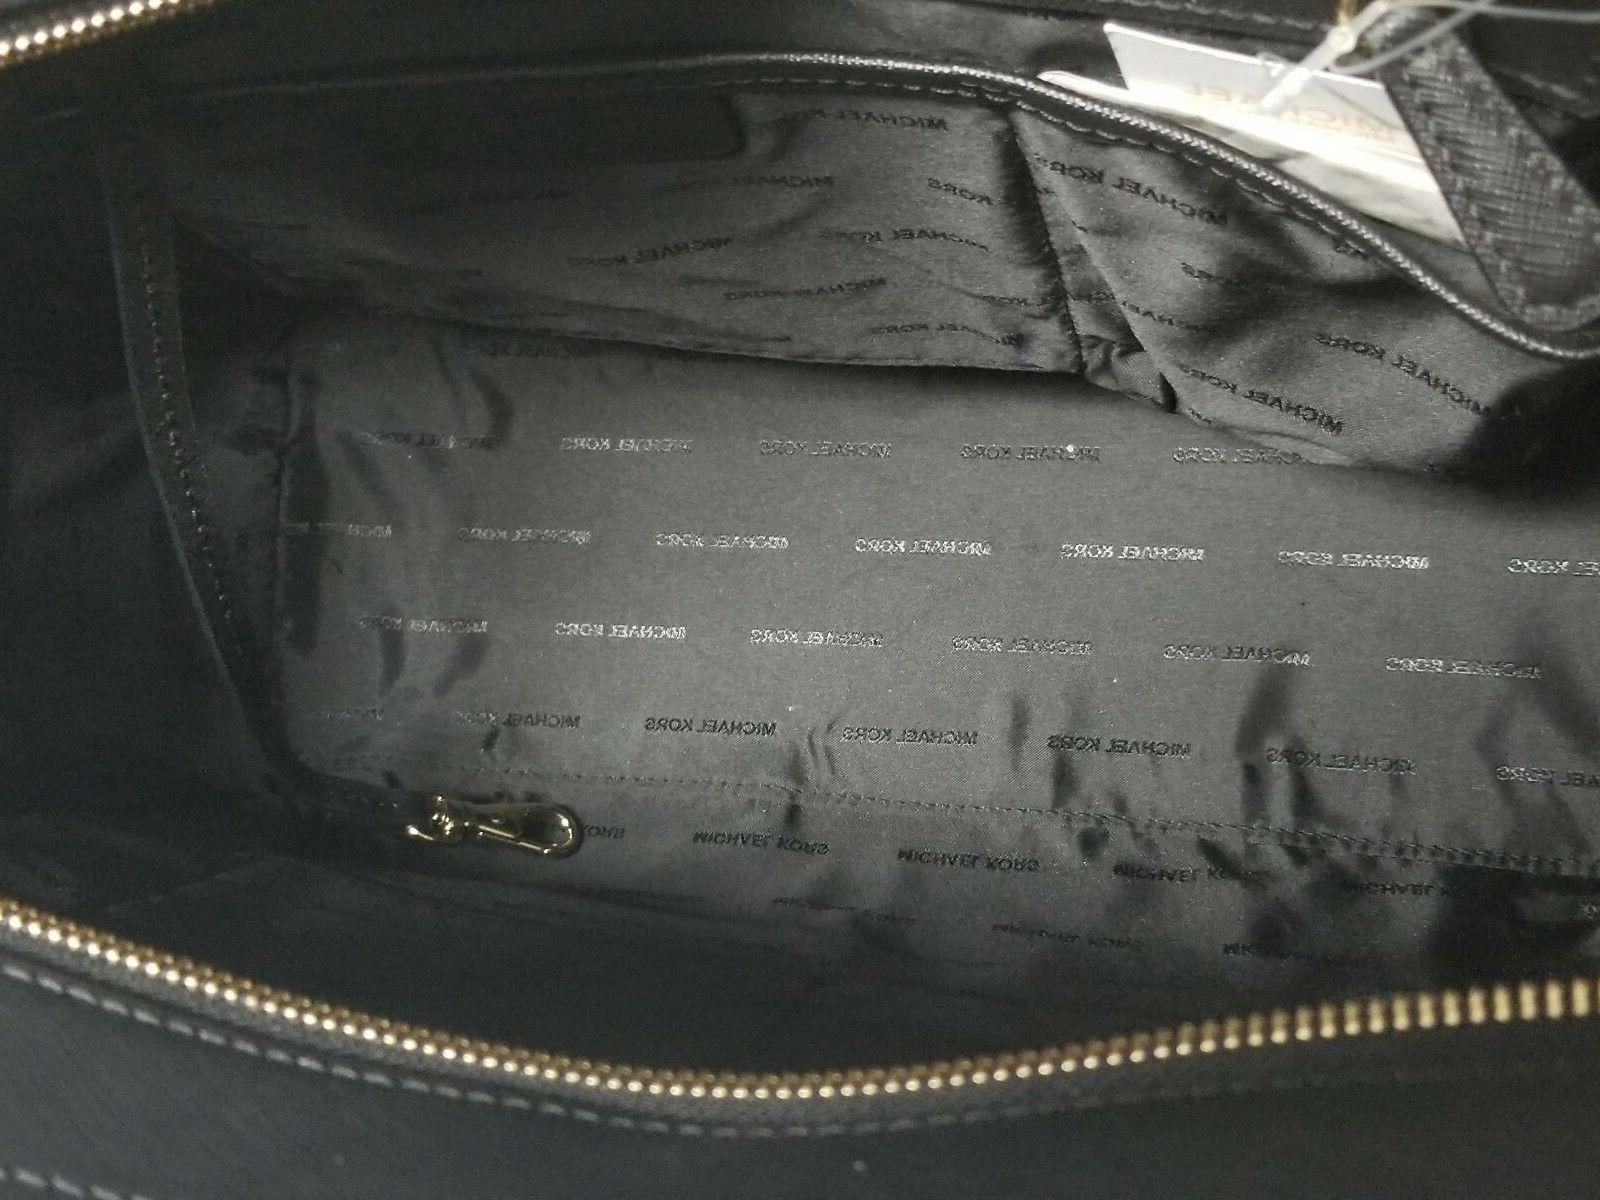 Michael Kors DEE Large Black Saffiano Leather Tote NWT